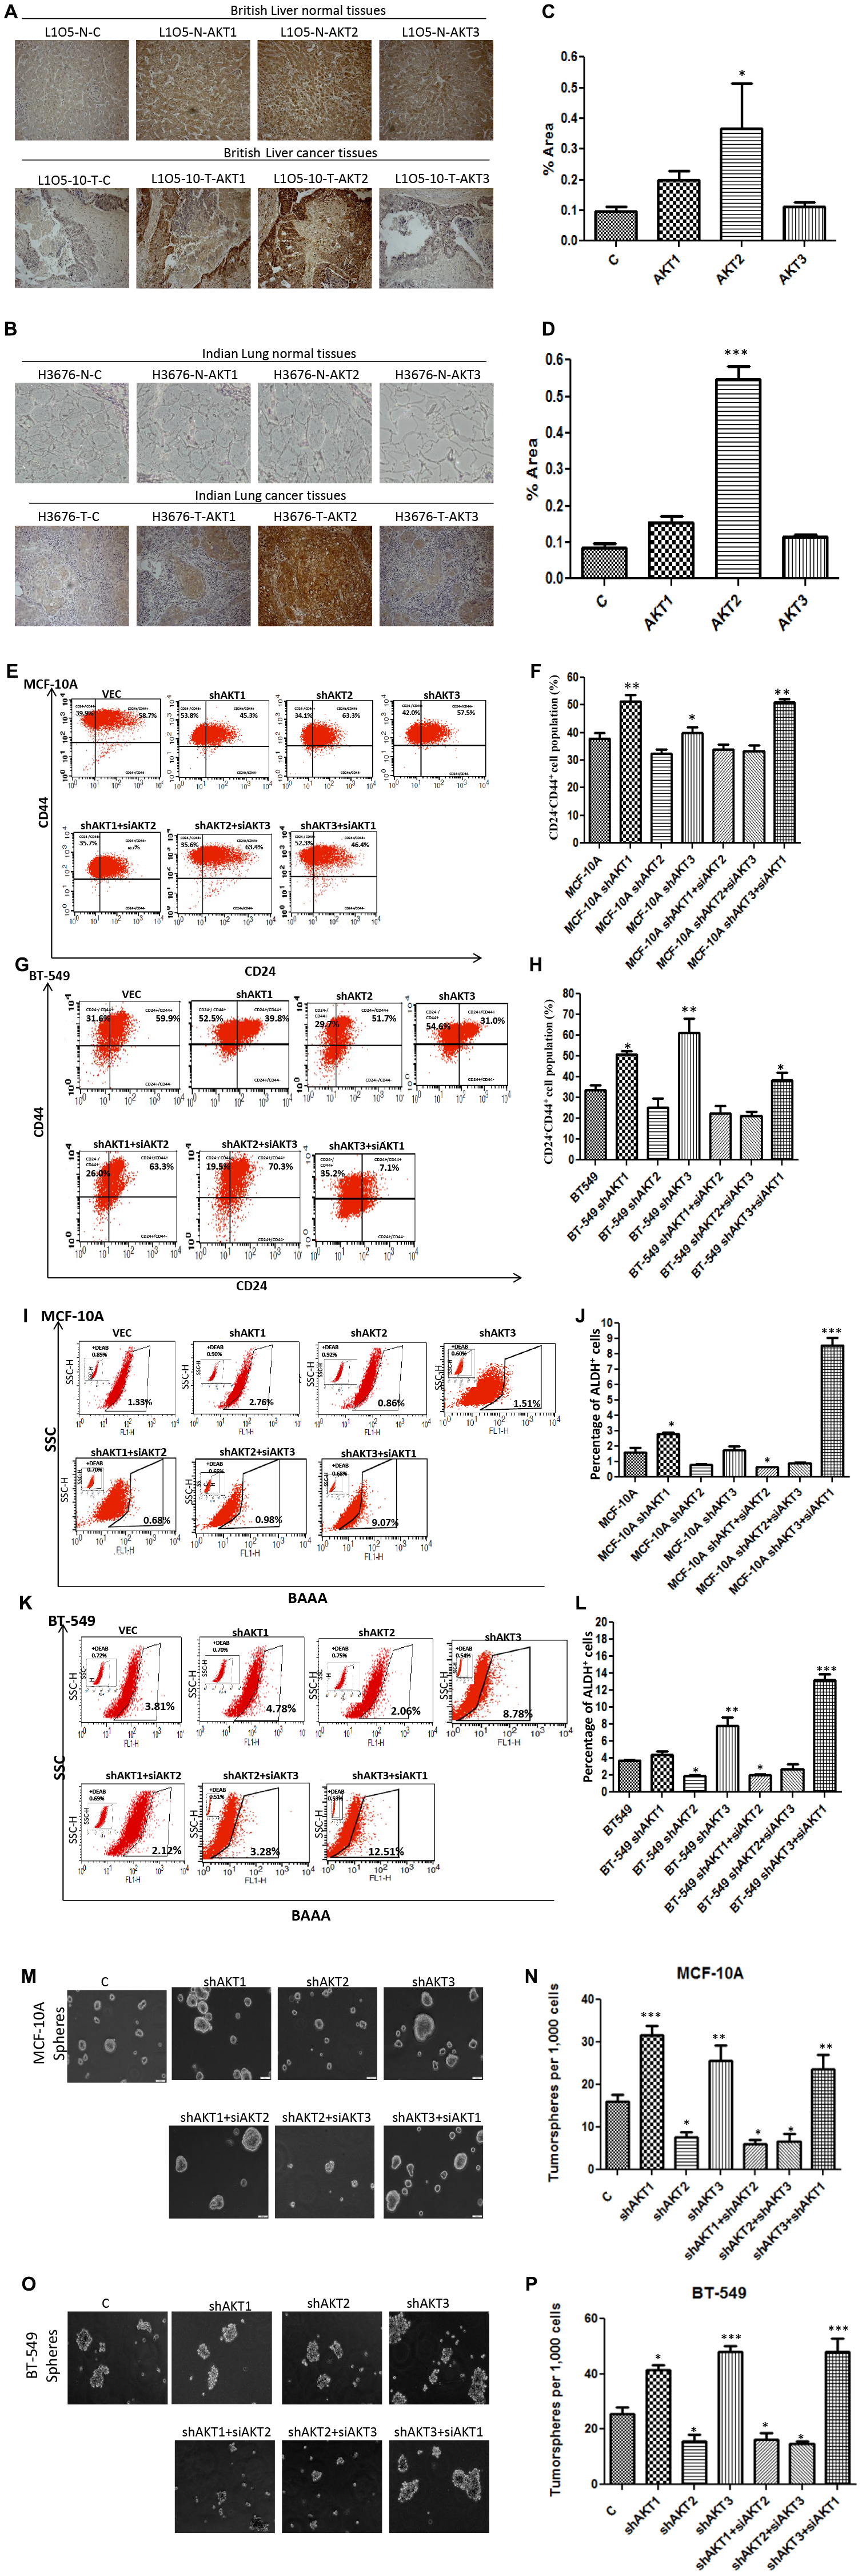 AKT2 promotes cancer stem cells and contributes to metastasis.